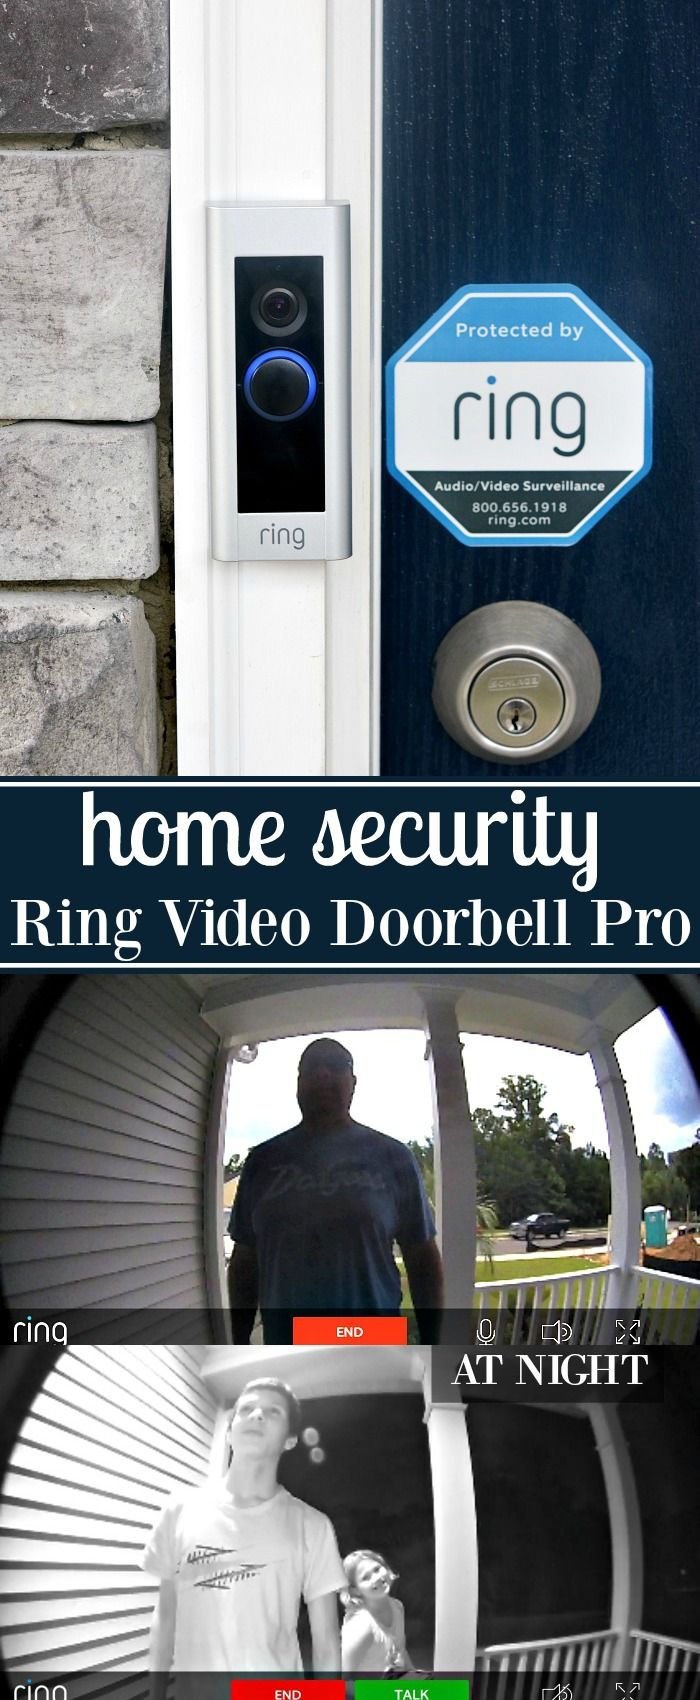 Home Security with the Ring Video Doorbell Pro AlwaysHome